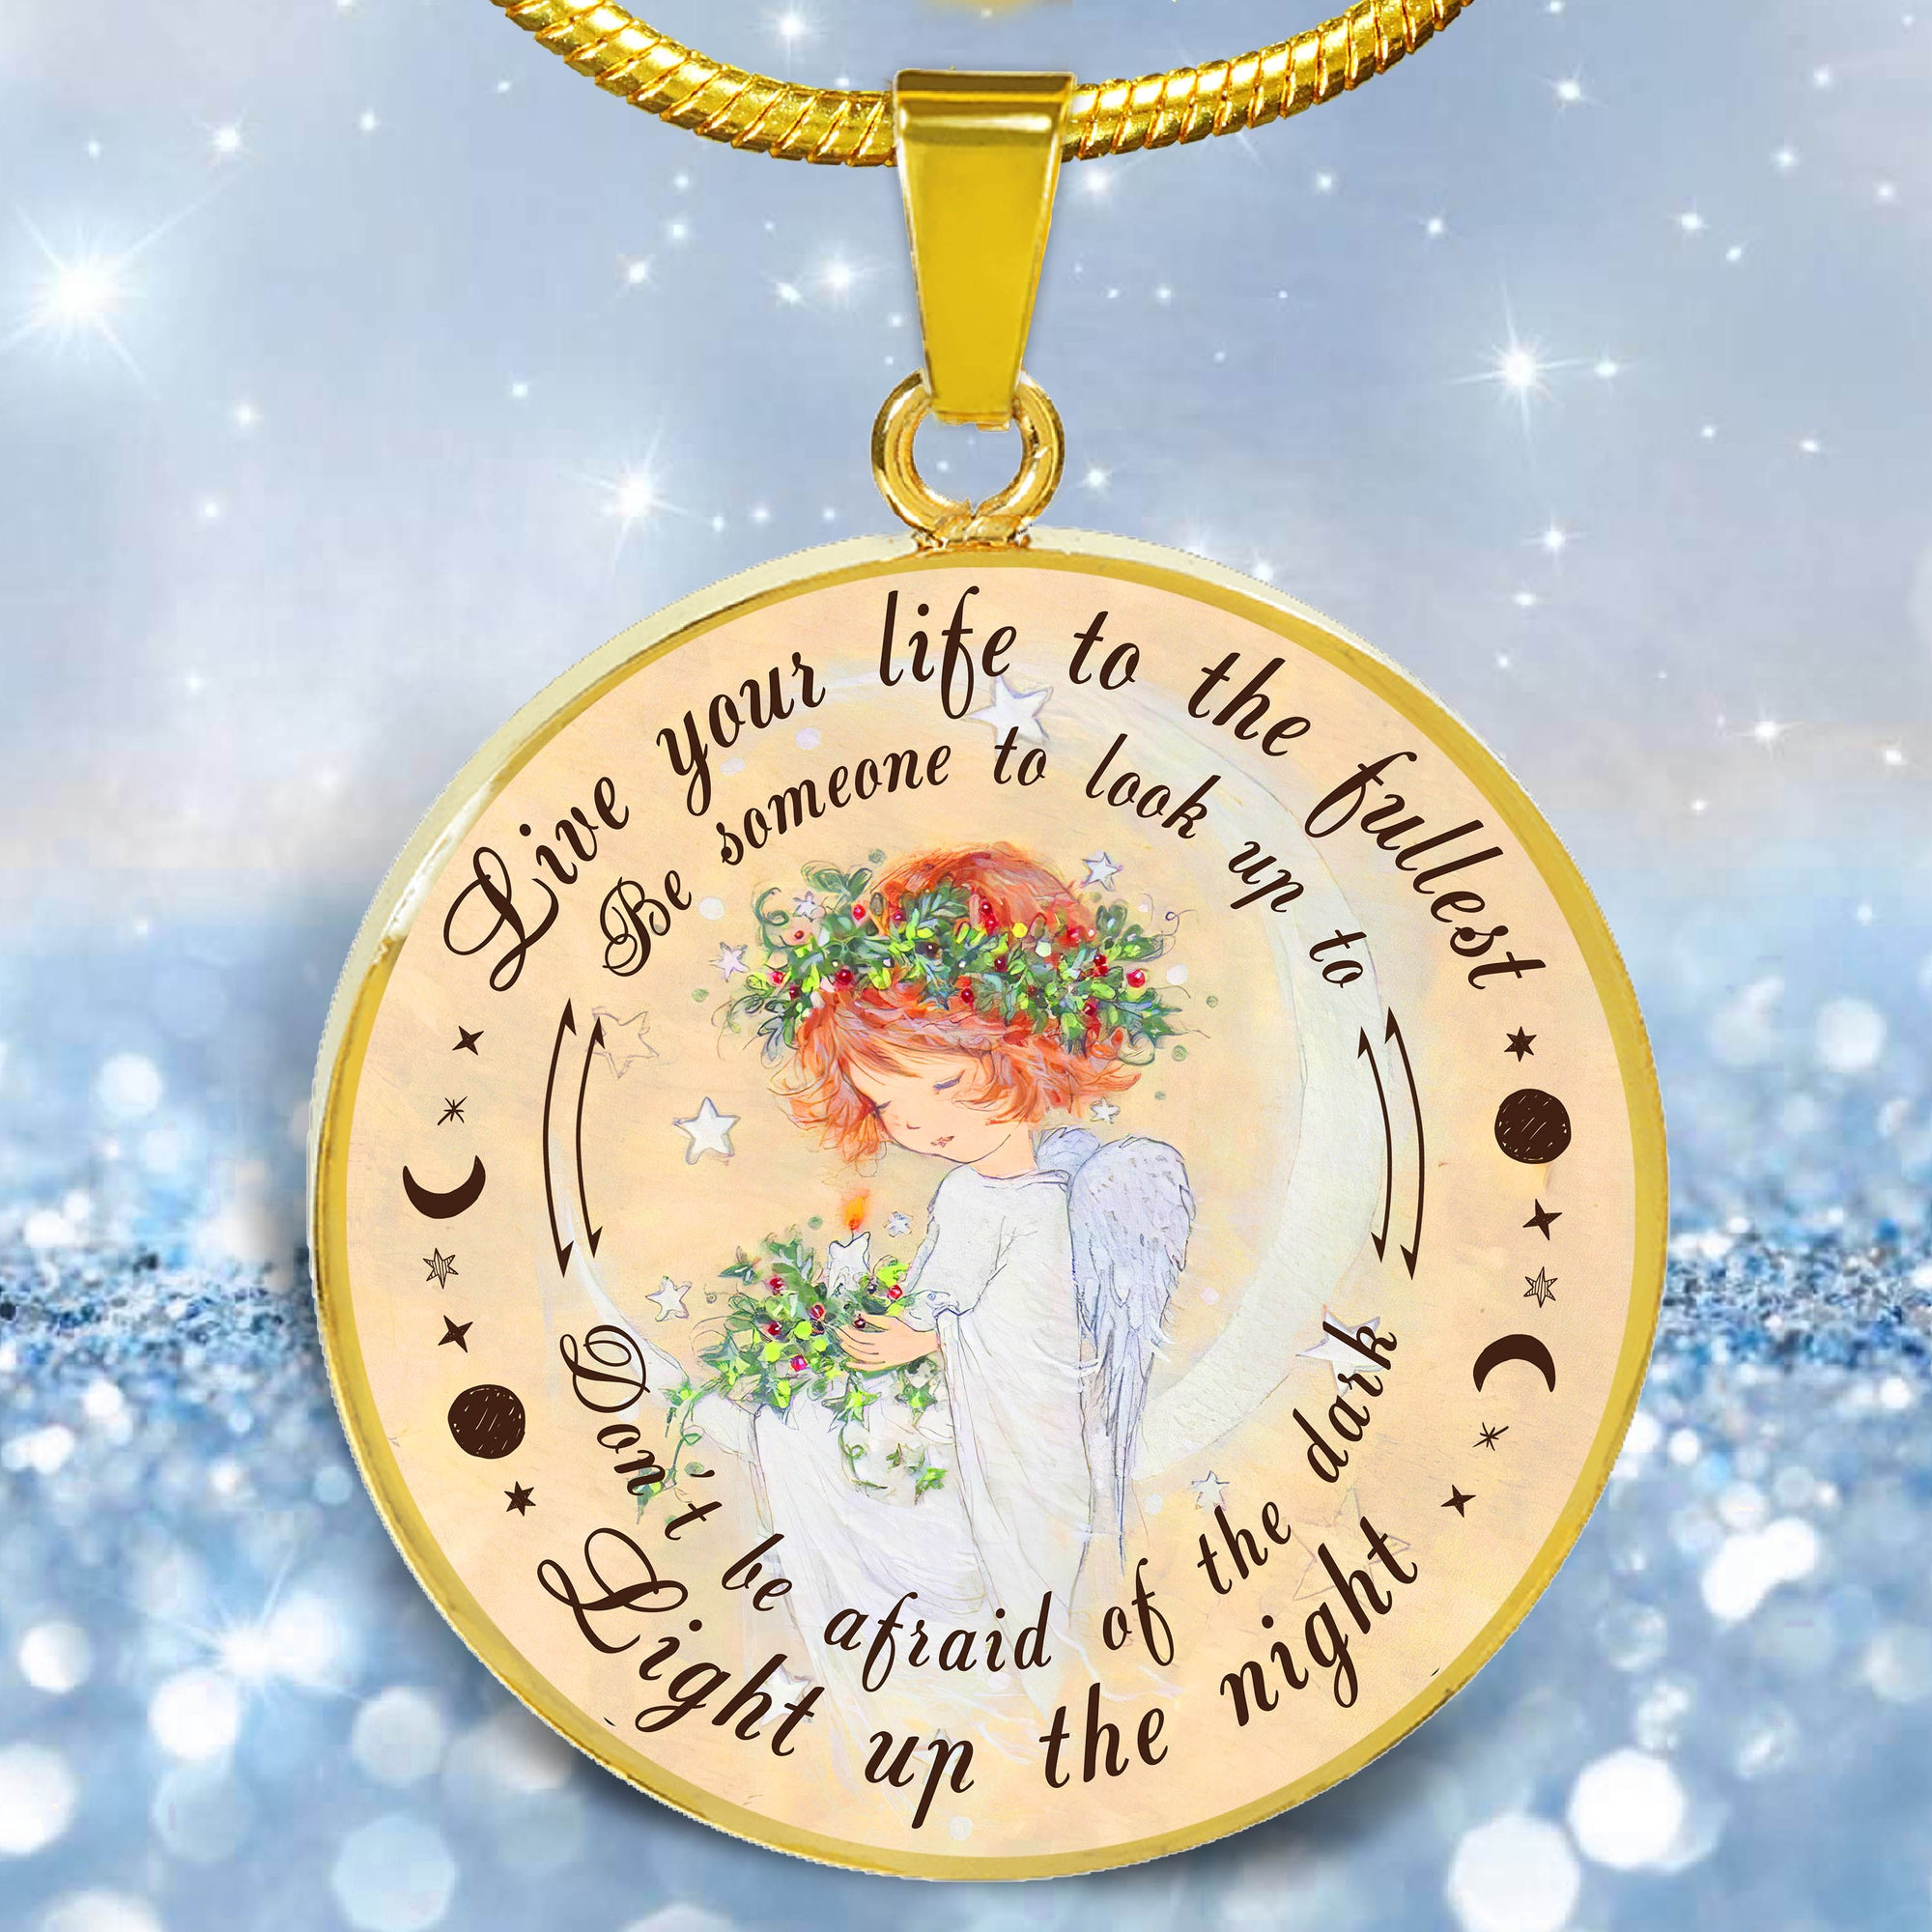 Daughter mom - Light up the night - Circle pendant necklace - Sentimental gifts for daughter from mom